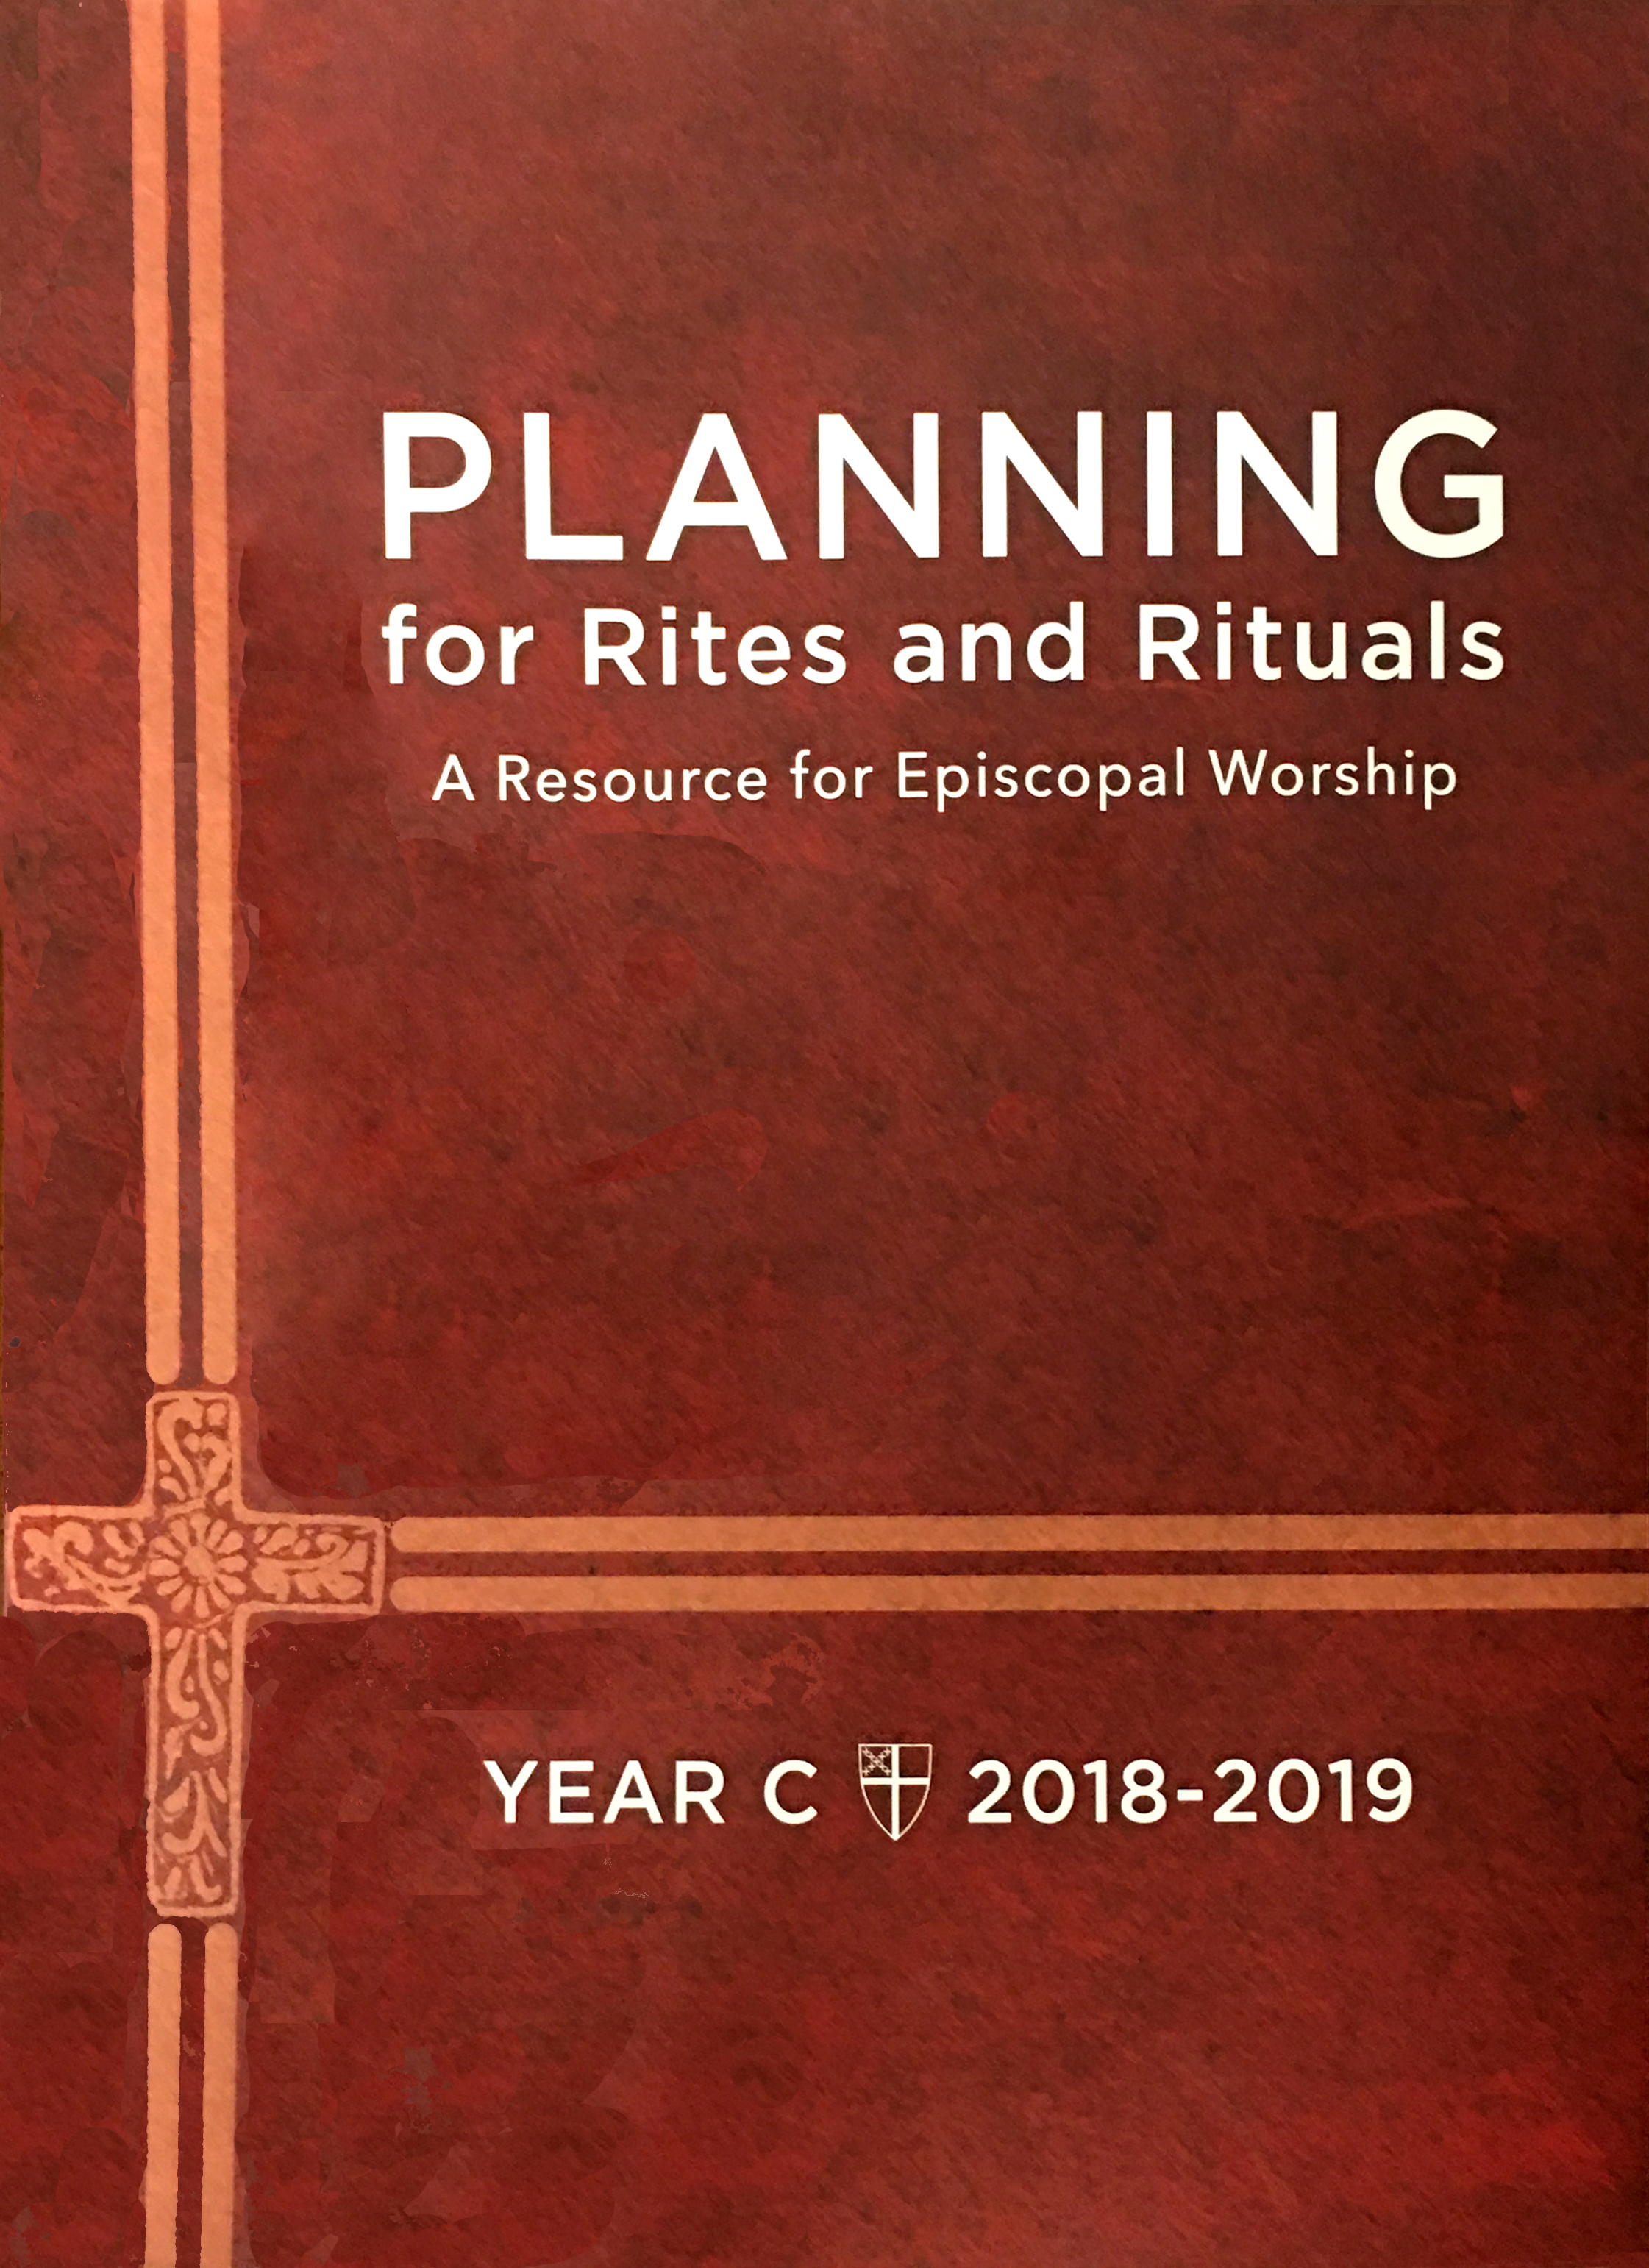 ChurchPublishing org: Planning for Rites and Rituals 2018-19